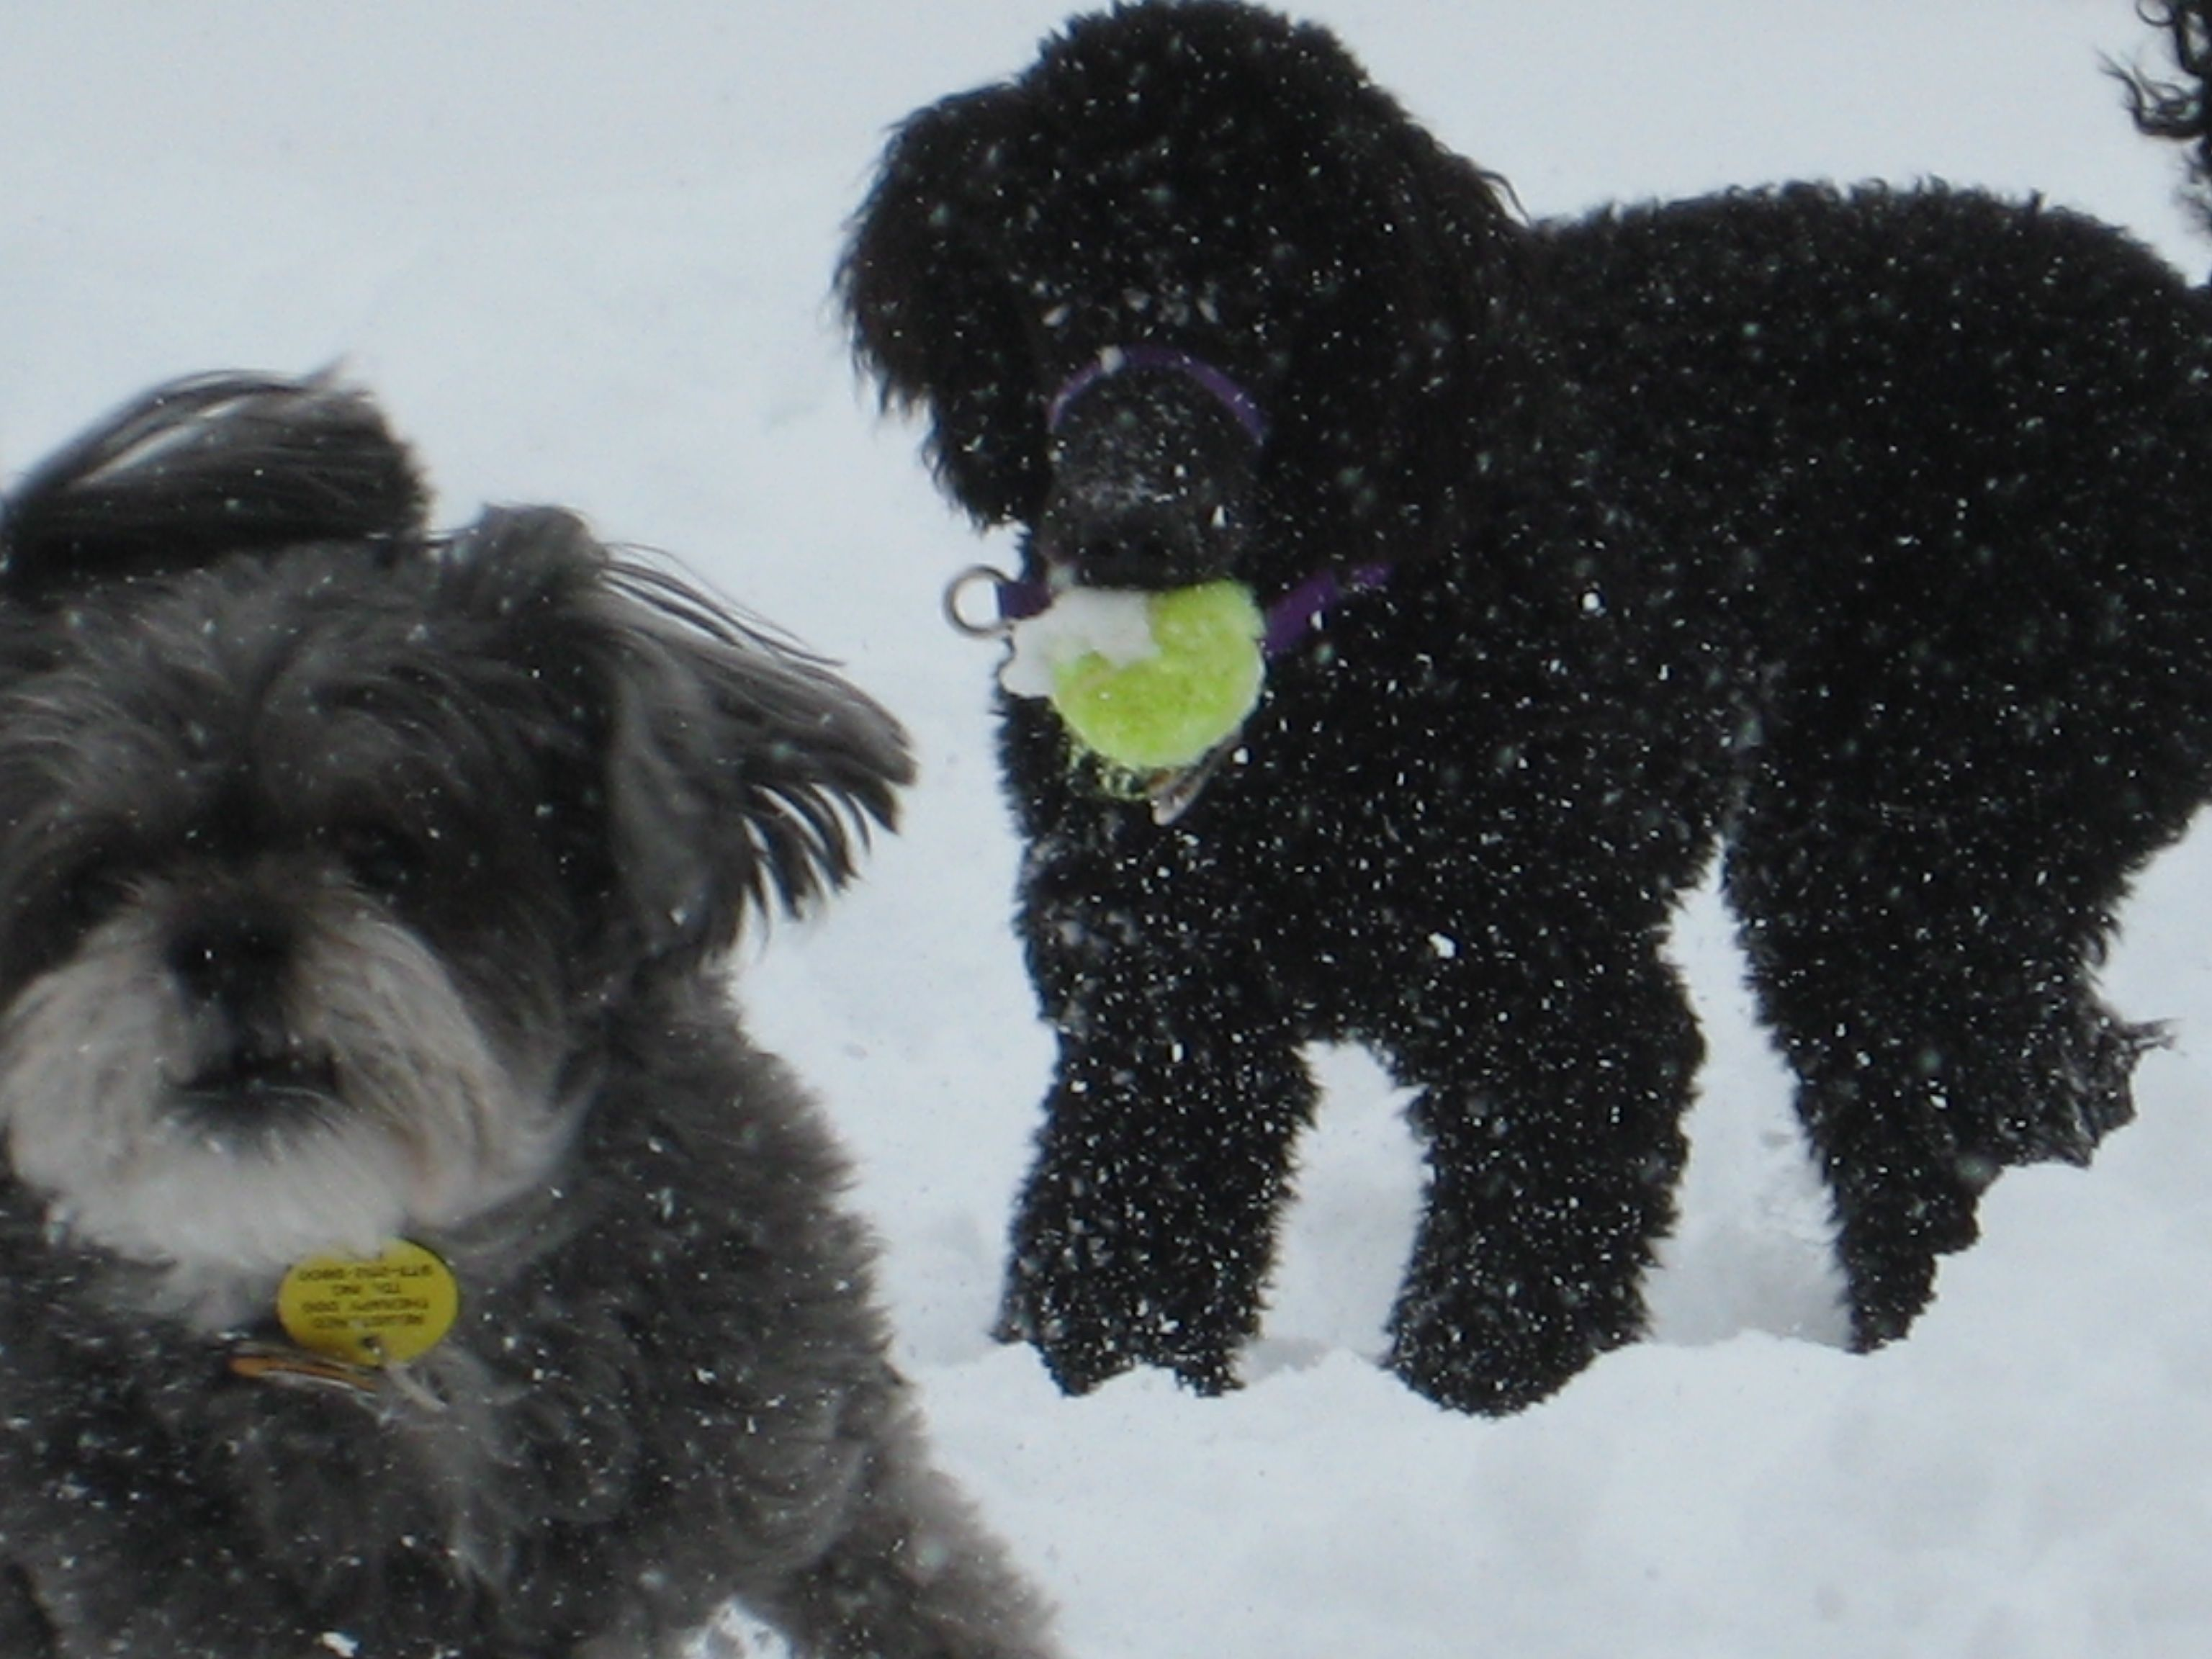 Mikey and Bodhi playing in the snow!